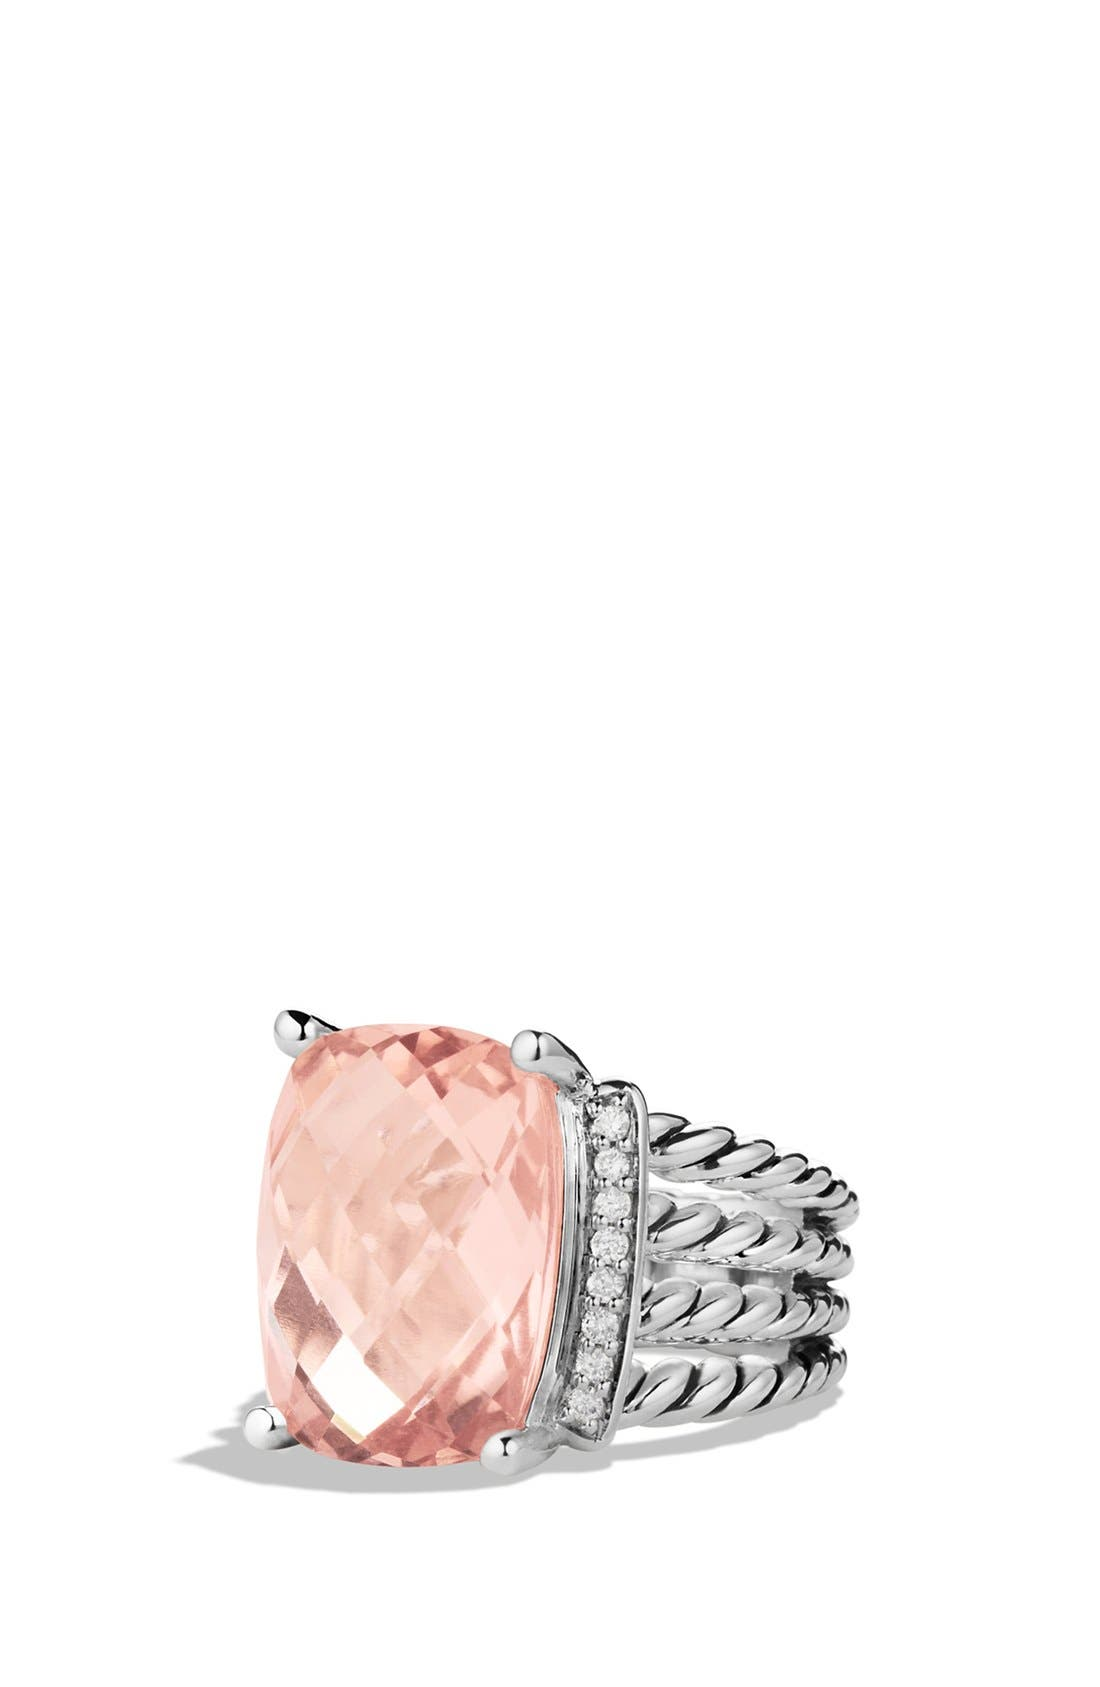 Alternate Image 1 Selected - David Yurman 'Wheaton' Ring with Semiprecious Stone & Diamonds